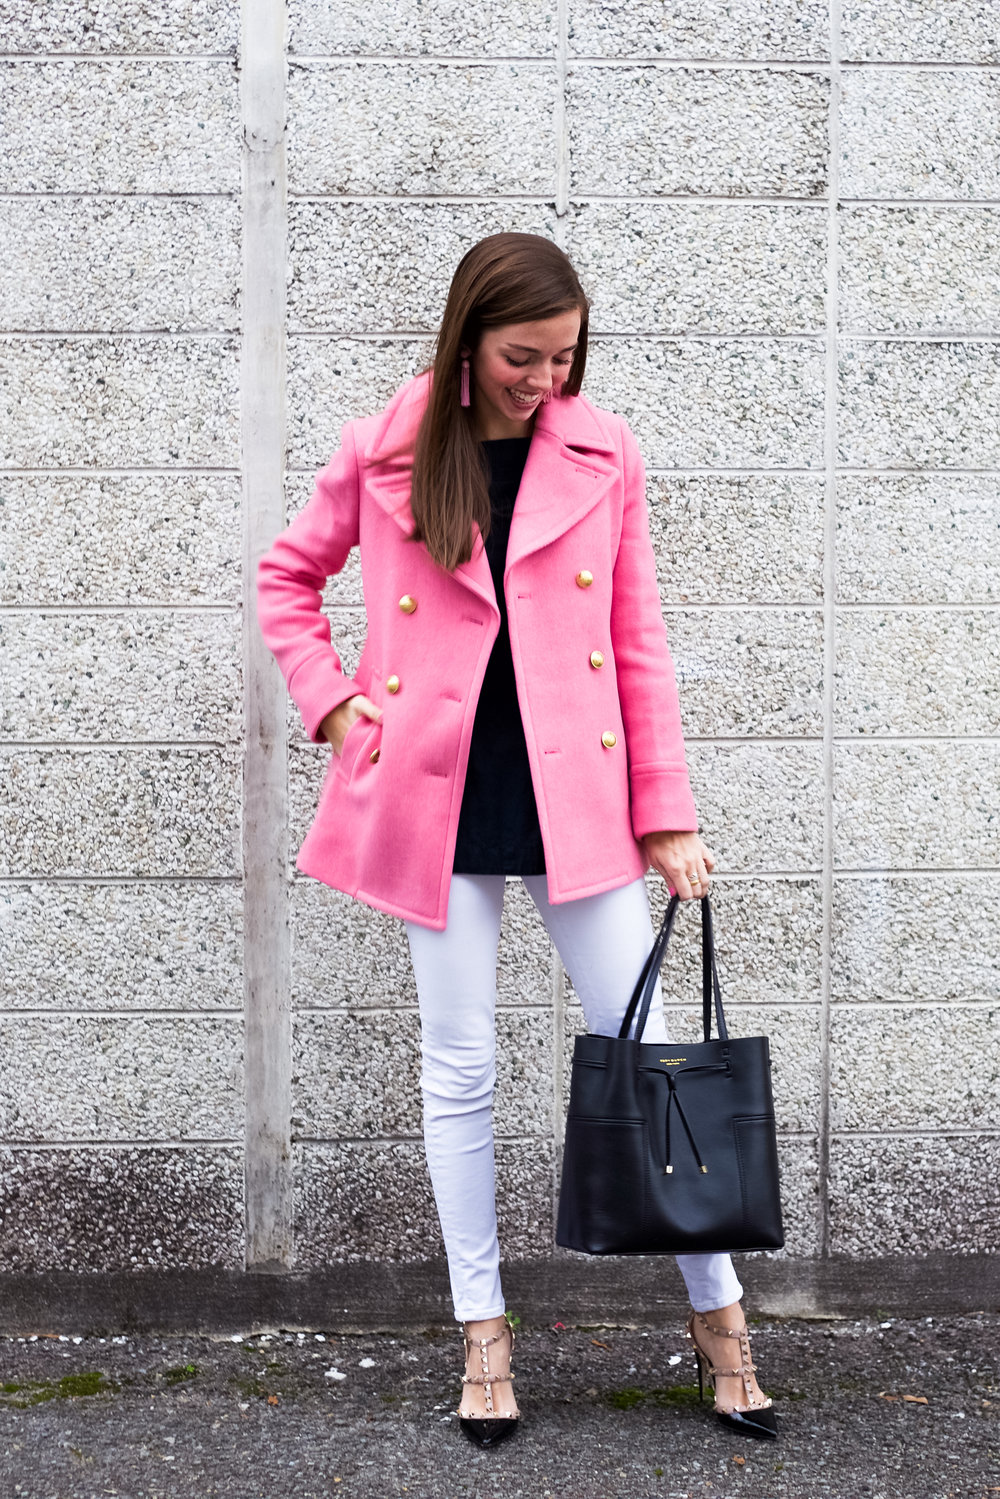 Pink + Black // Valentine's Day Outfit Inspo